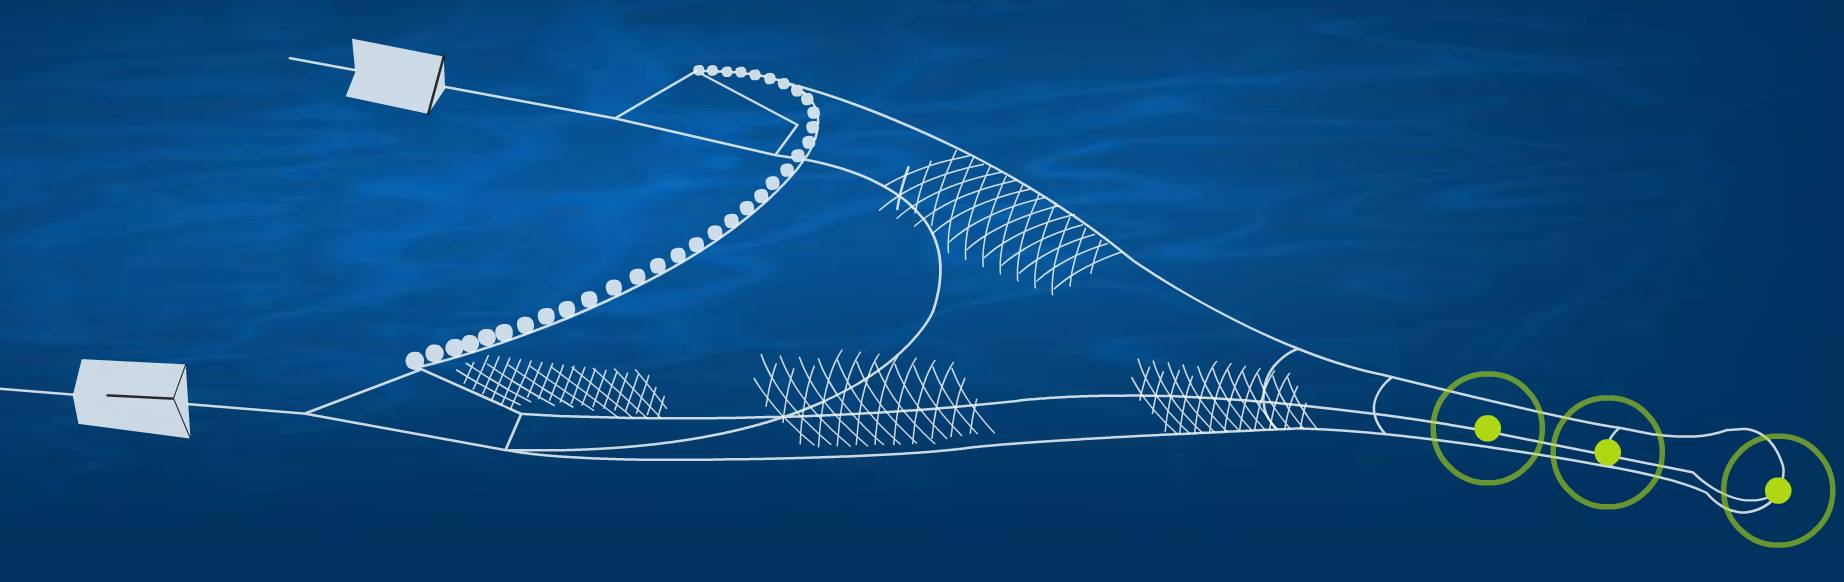 Illustration of trawl with sensors